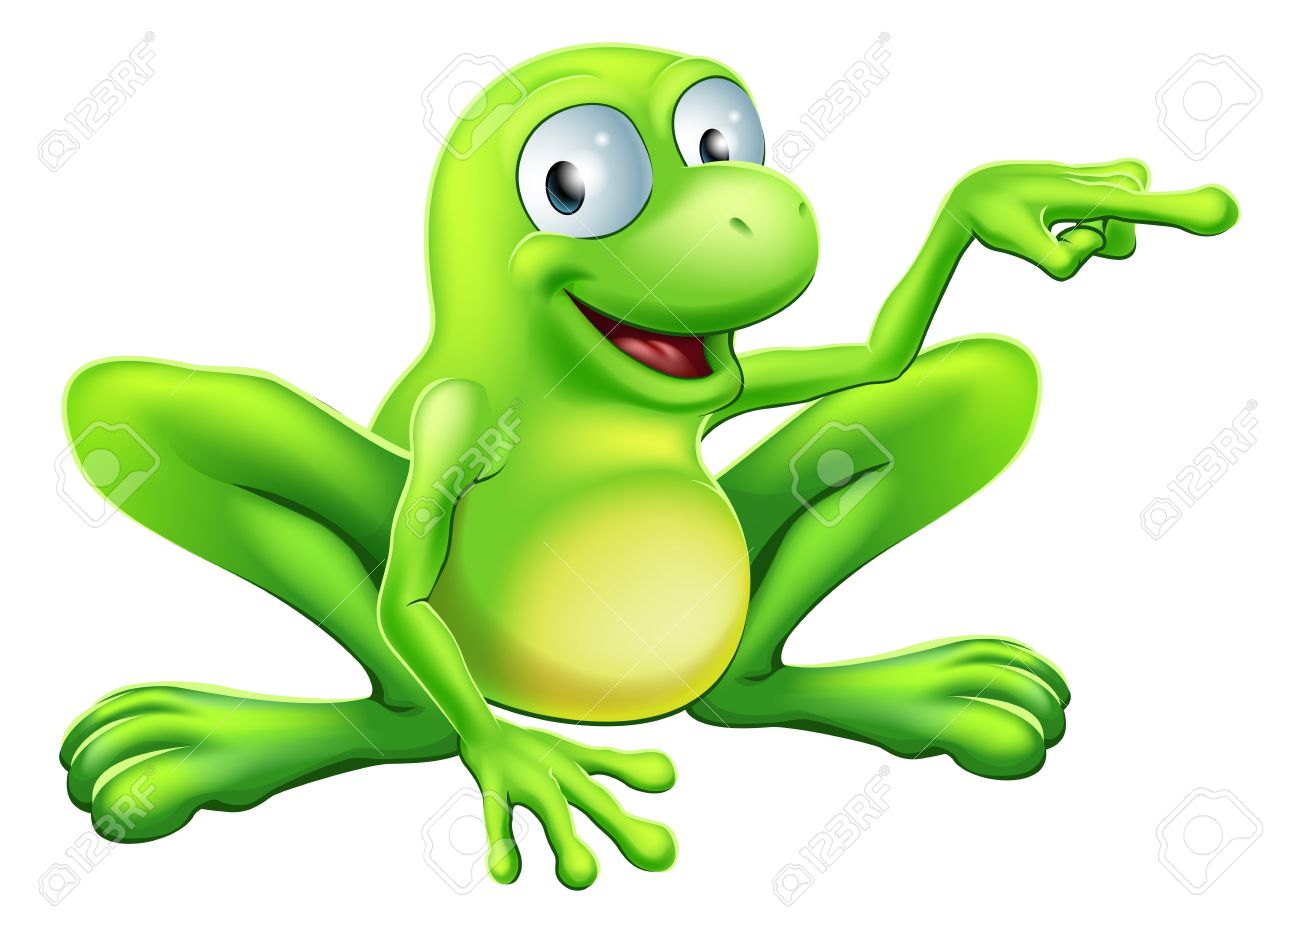 An Illustration Of A Cute Green Happy Frog Character Pointing.